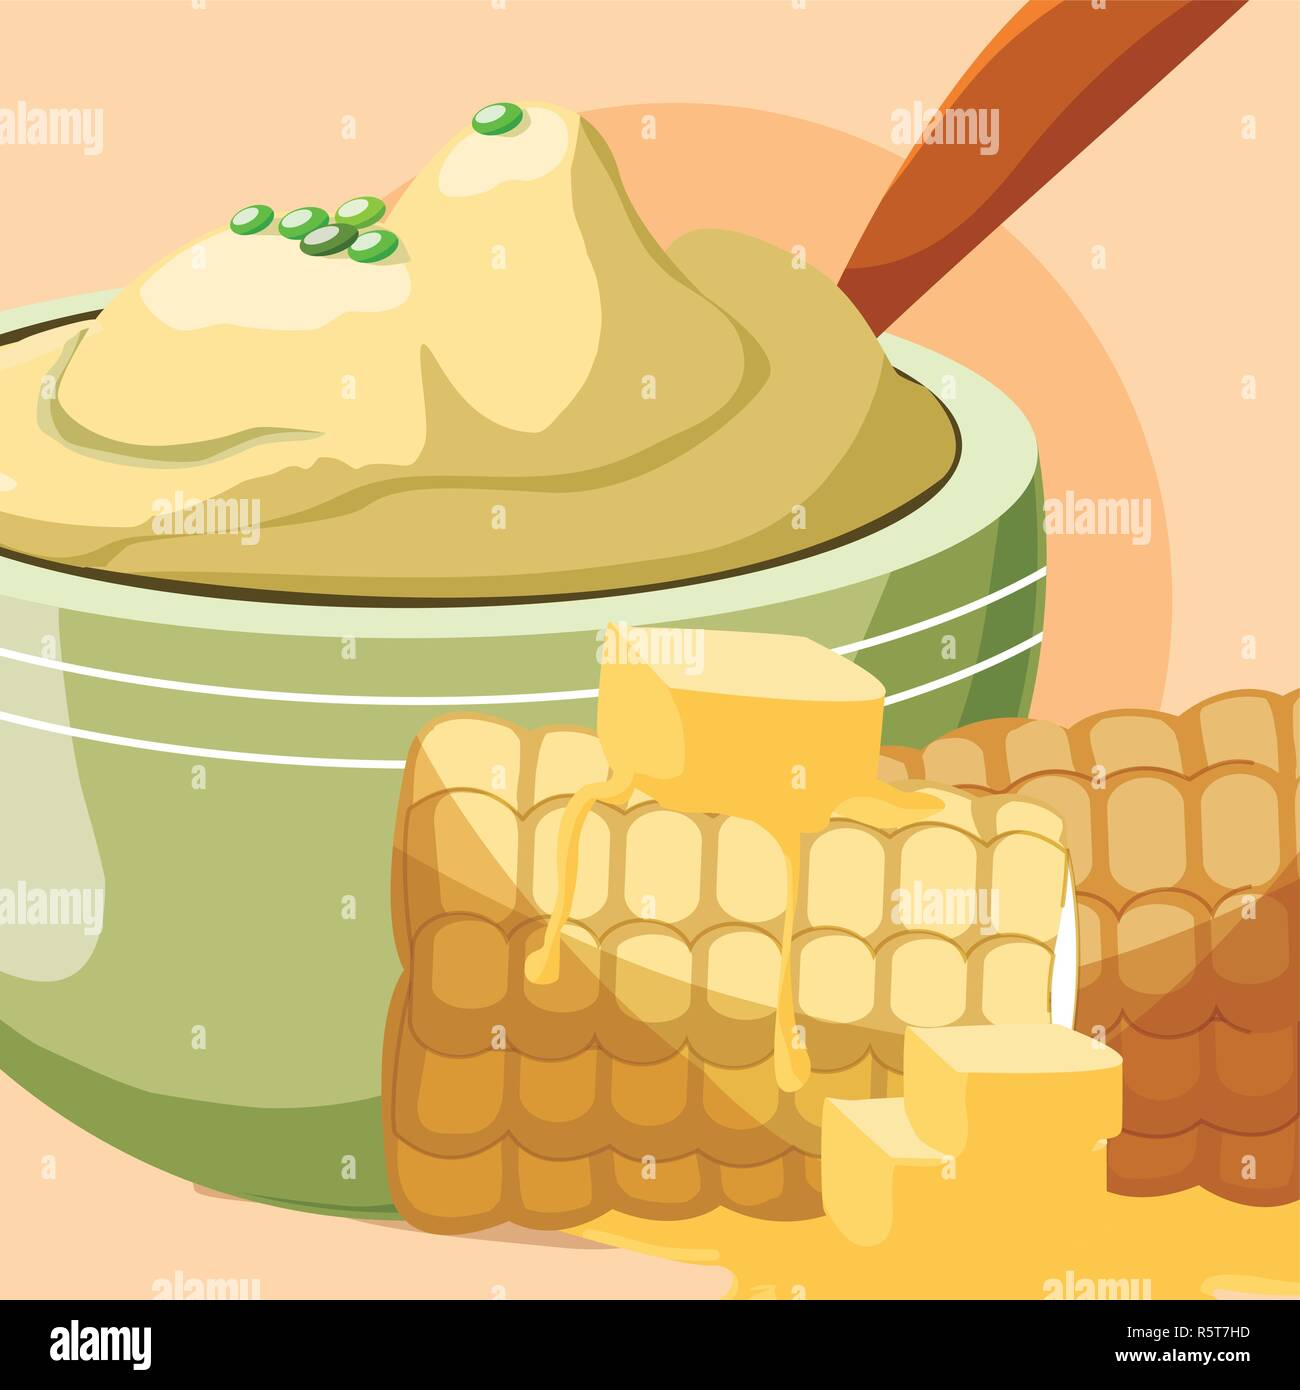 grilled corn and bowl with mashed potatoes over orange background, vector illustration - Stock Vector